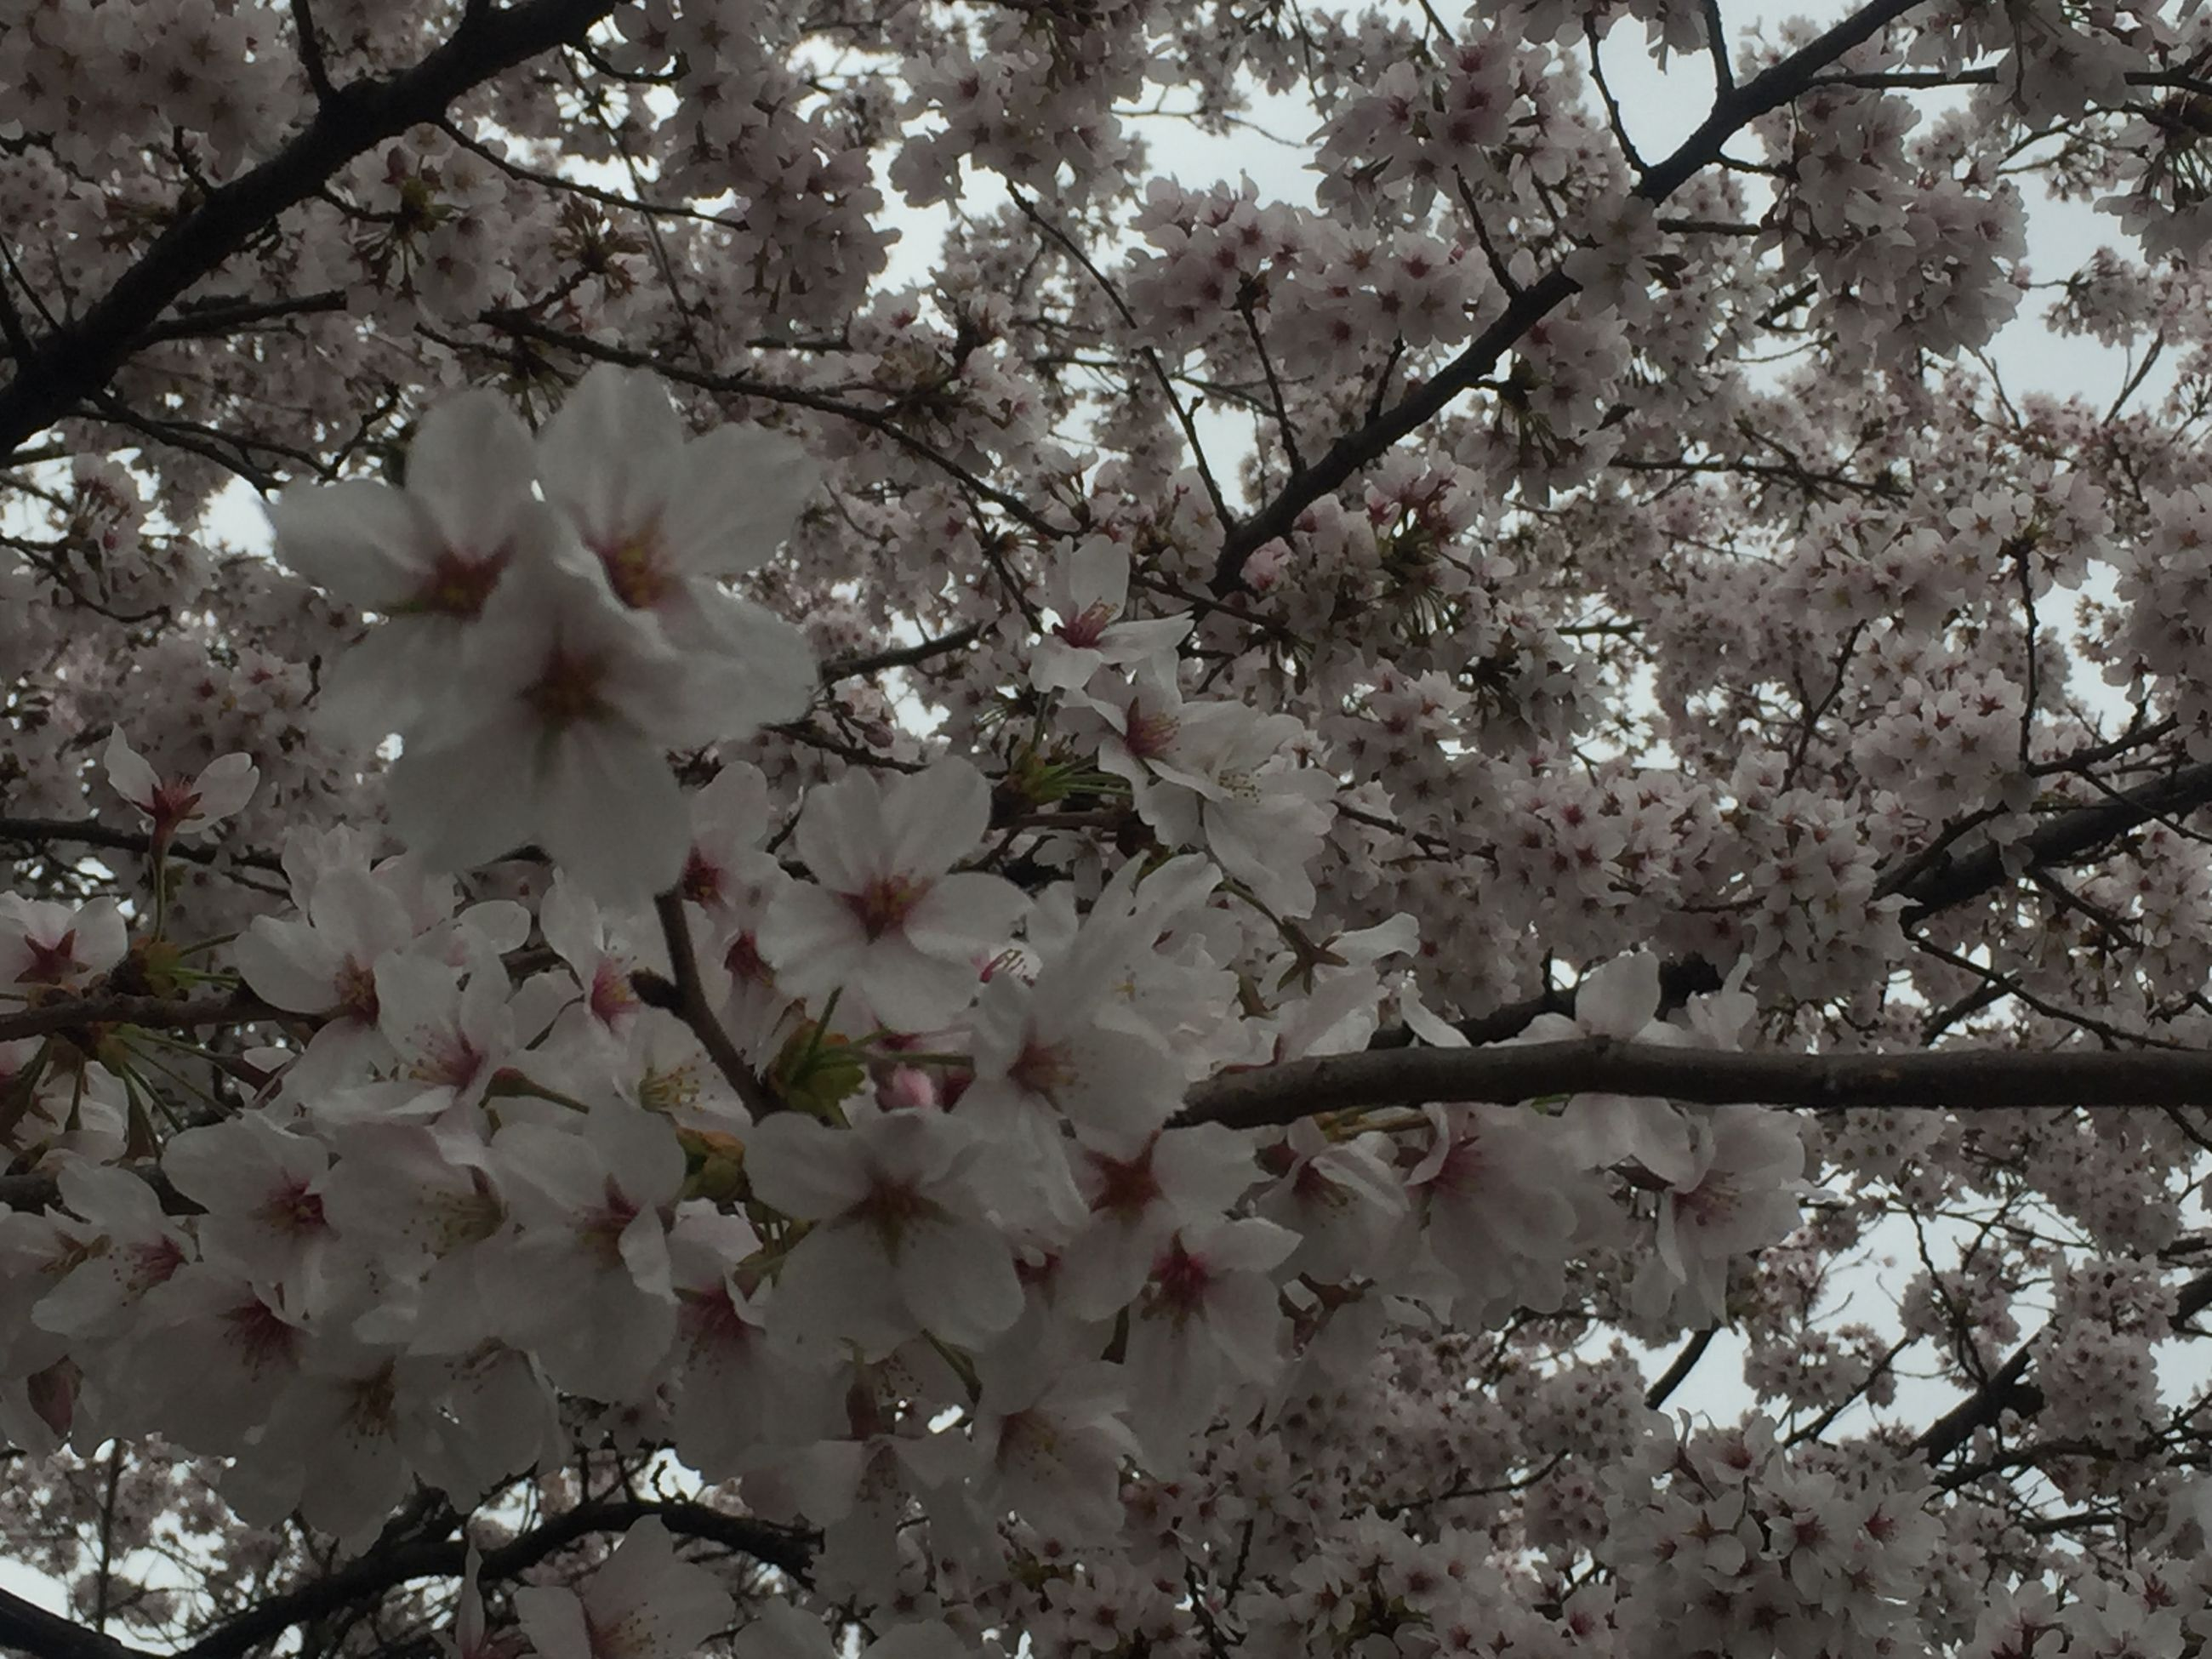 flower, tree, branch, freshness, cherry blossom, growth, fragility, blossom, cherry tree, beauty in nature, low angle view, nature, pink color, in bloom, petal, springtime, blooming, white color, fruit tree, day